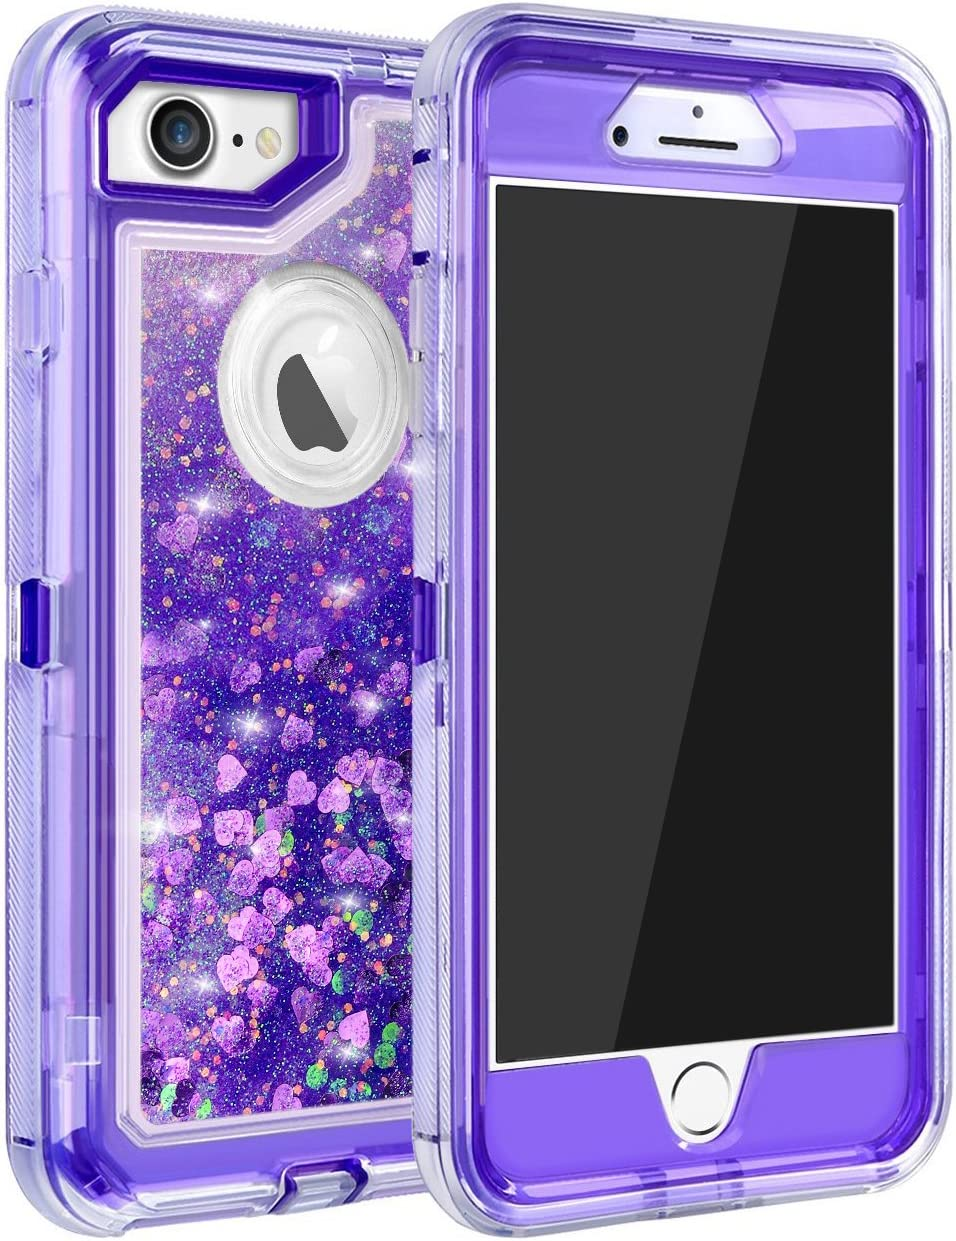 MAXCURY Case for iPhone 7, iPhone 8 Case, Bling Glitter Quicksand Case for iPhone 6s, 3 in 1 Heavy Duty Shockproof Flowing Liquid Protective Defender Clear Case for iPhone 8/7/6/6s - Purple